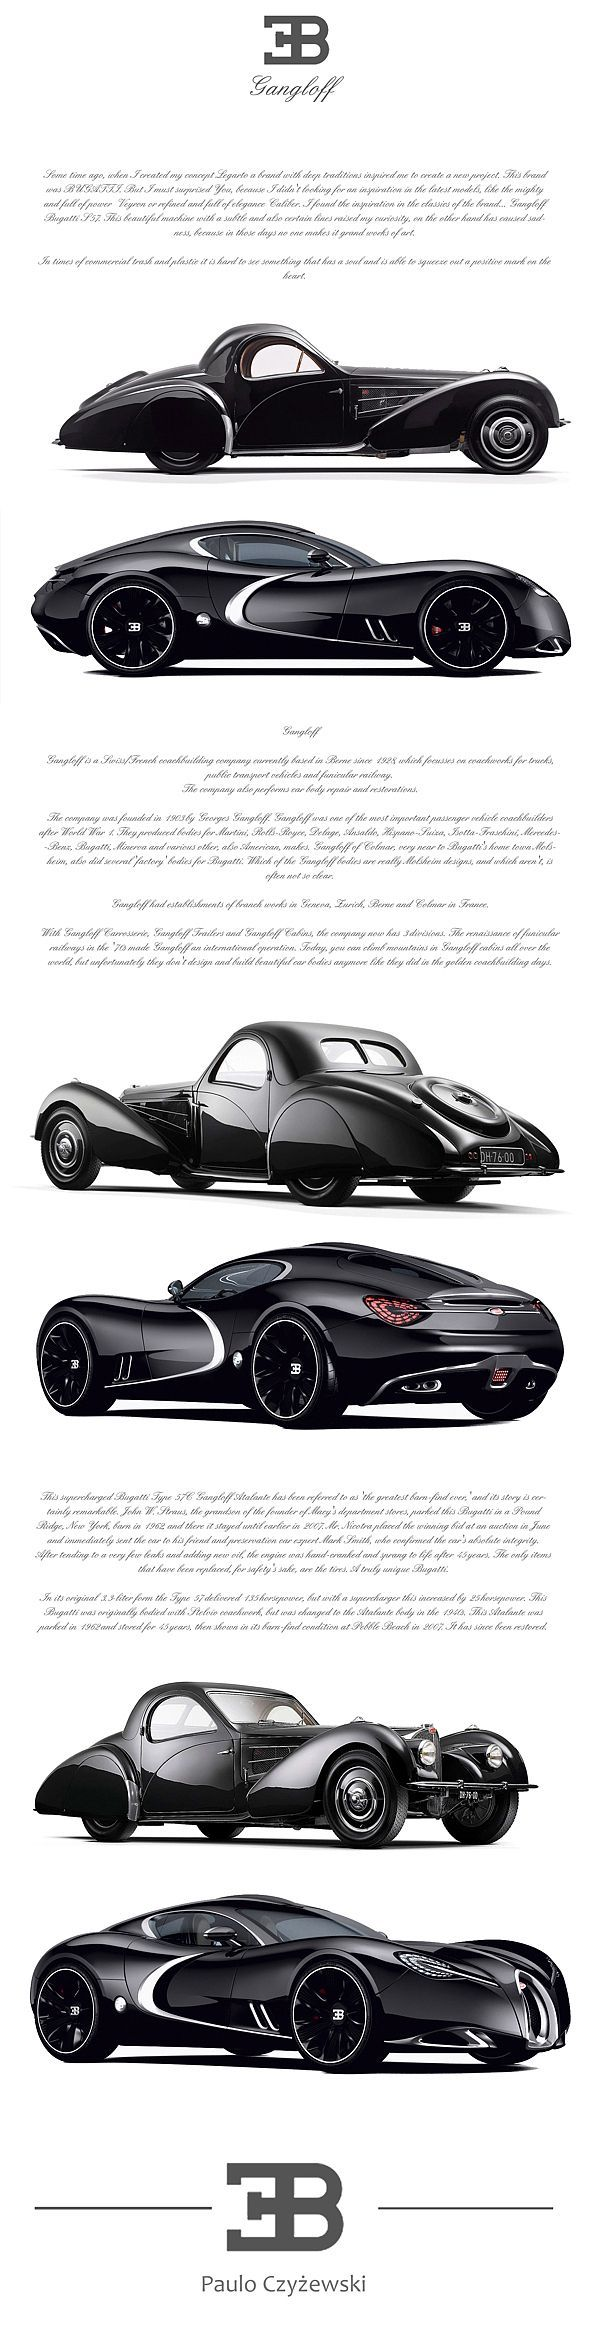 BUGATTI GANGLOFF CONCEPT CAR , INVISIUM By Paweł Czyżewski. My Dream, As A  Future